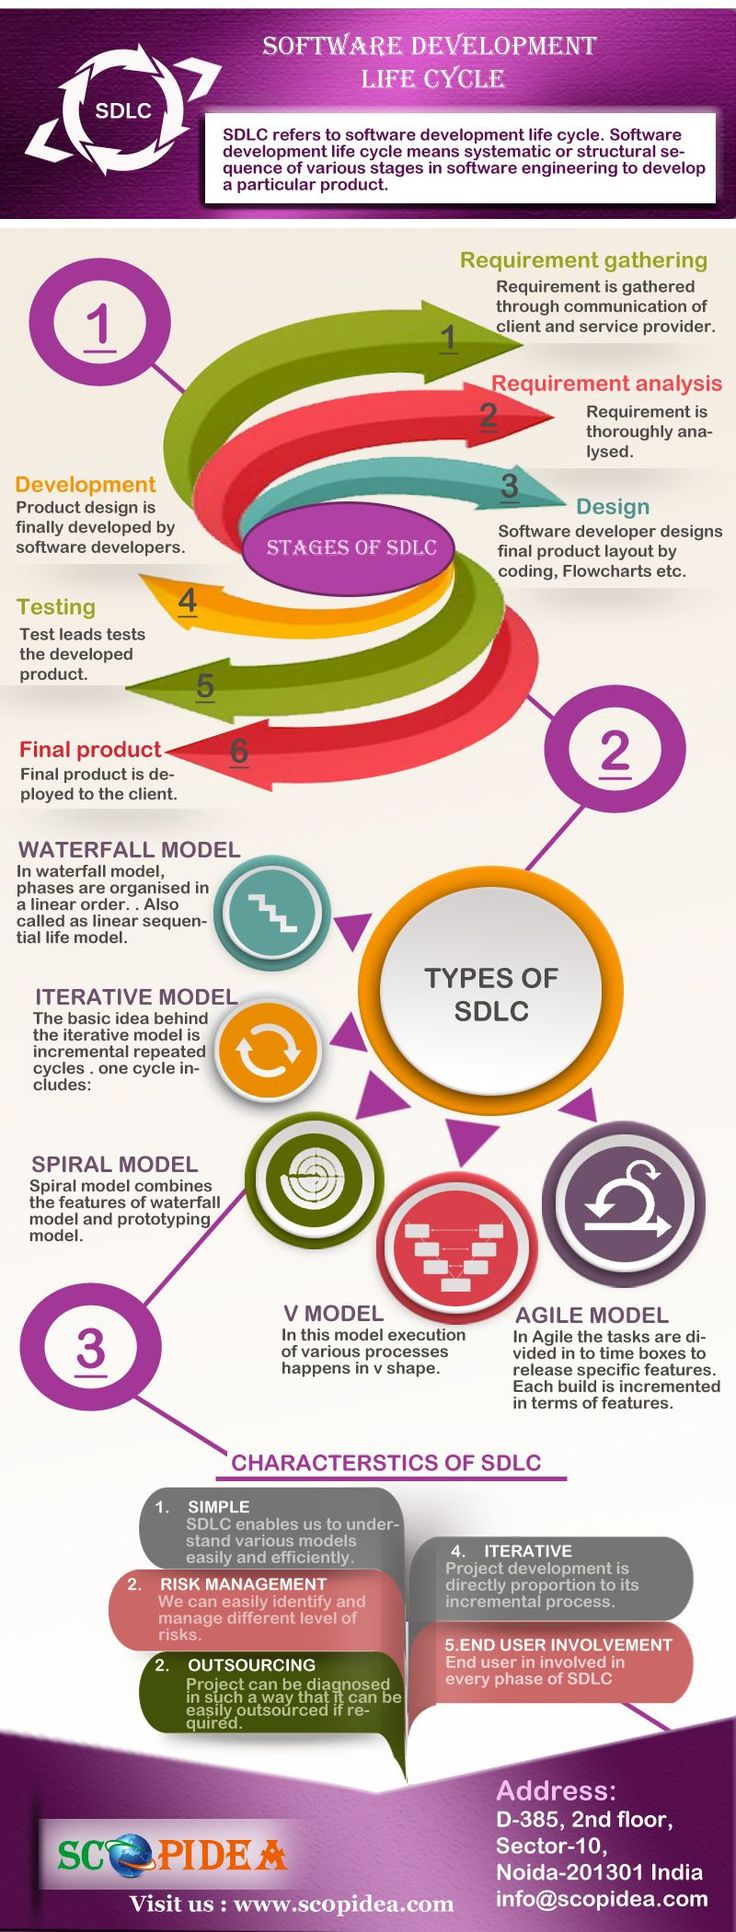 Life cycle various stages of development from an embryo to - Software Development Life Cycle And Its Stage And Sdlc Model Describe In This Infographics